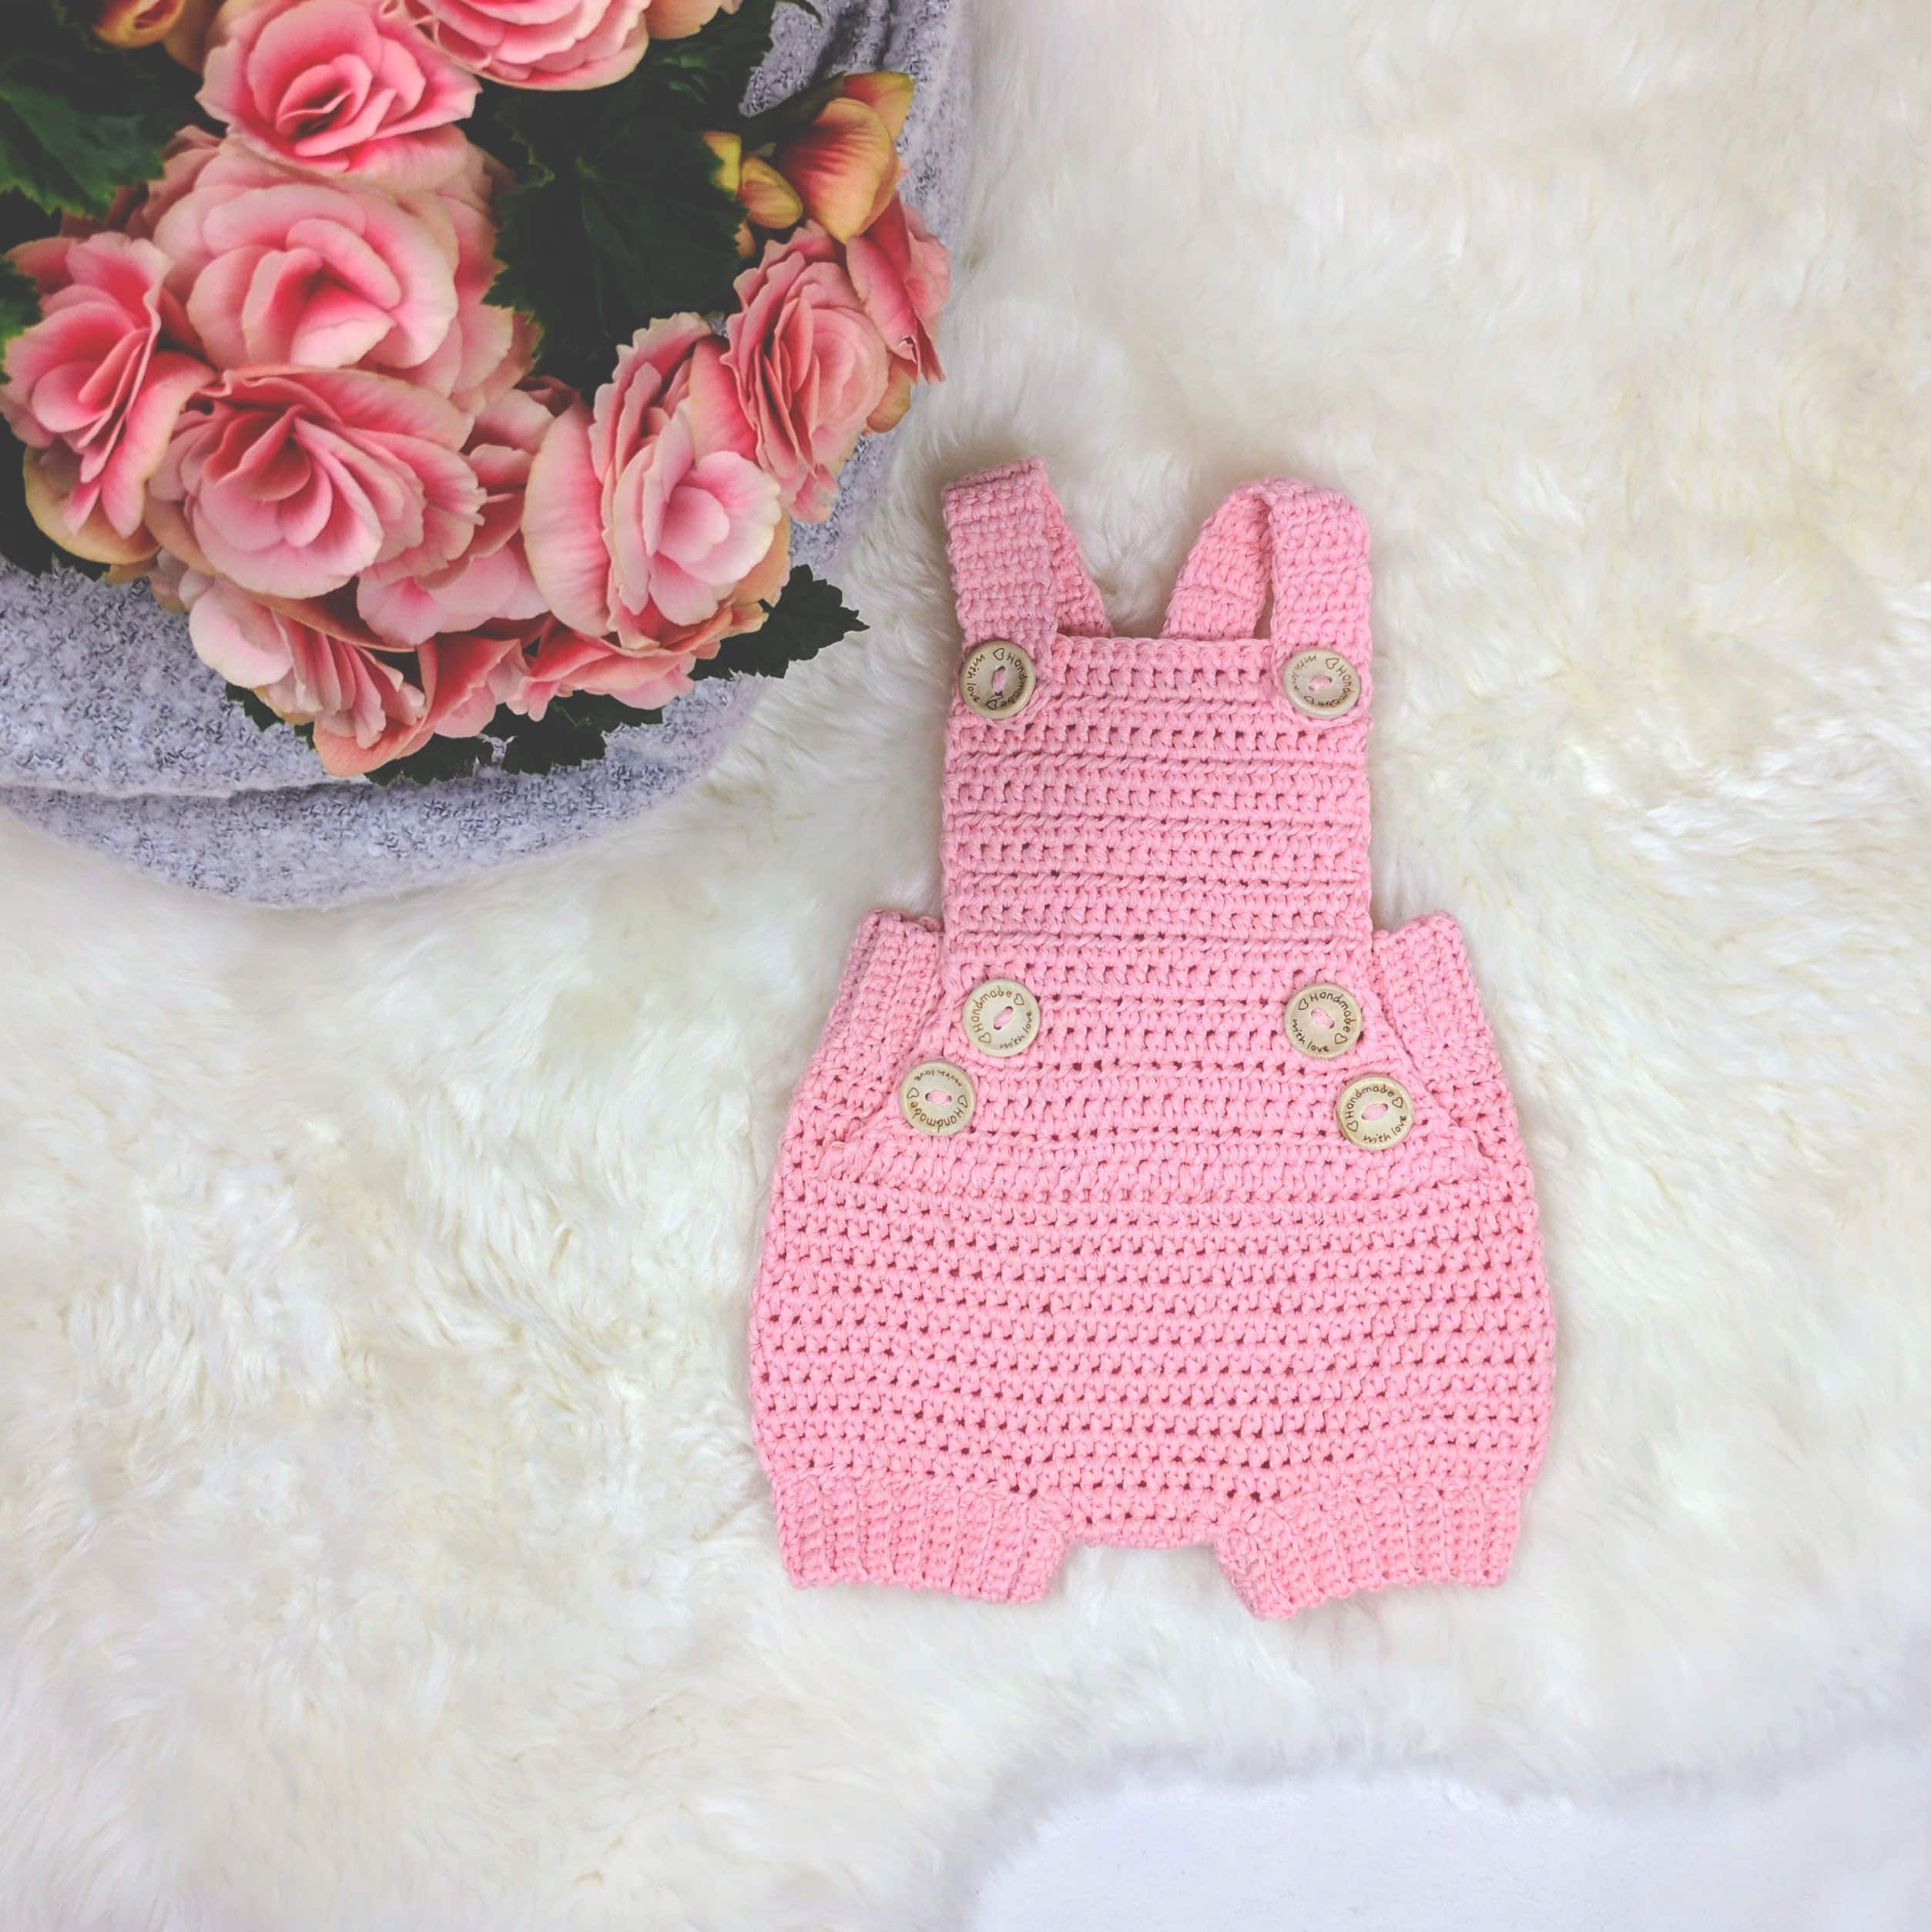 Crochet Baby Romper Pure Happienss ? Croby Patterns